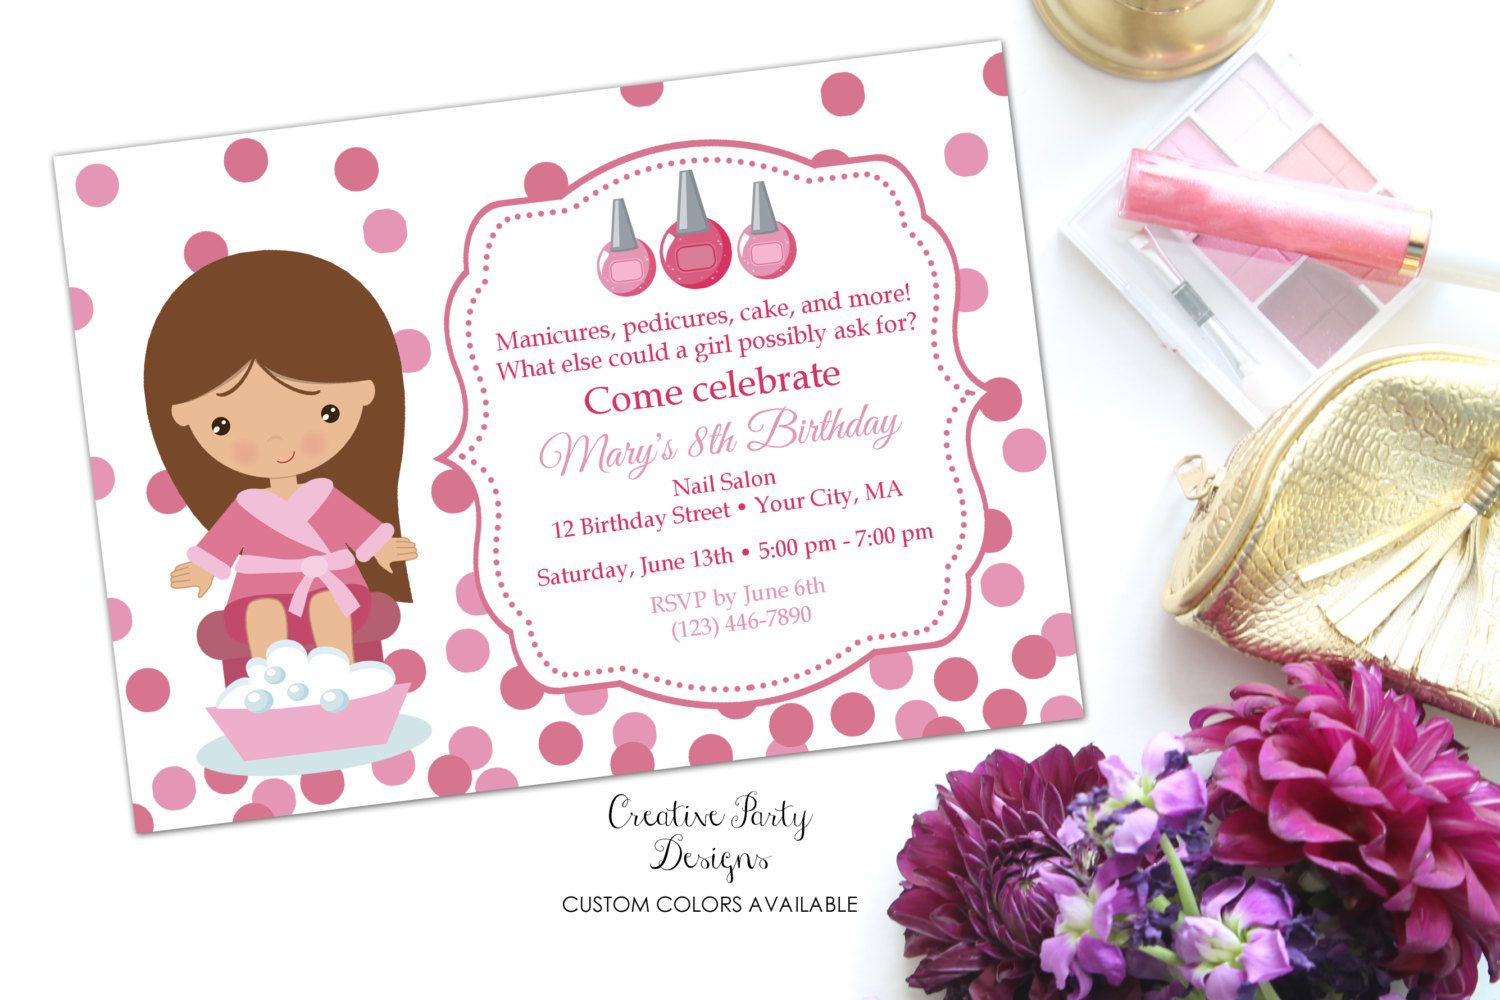 Girls Nail Party Invitation - Nail Birthday Invite - Manicure ...